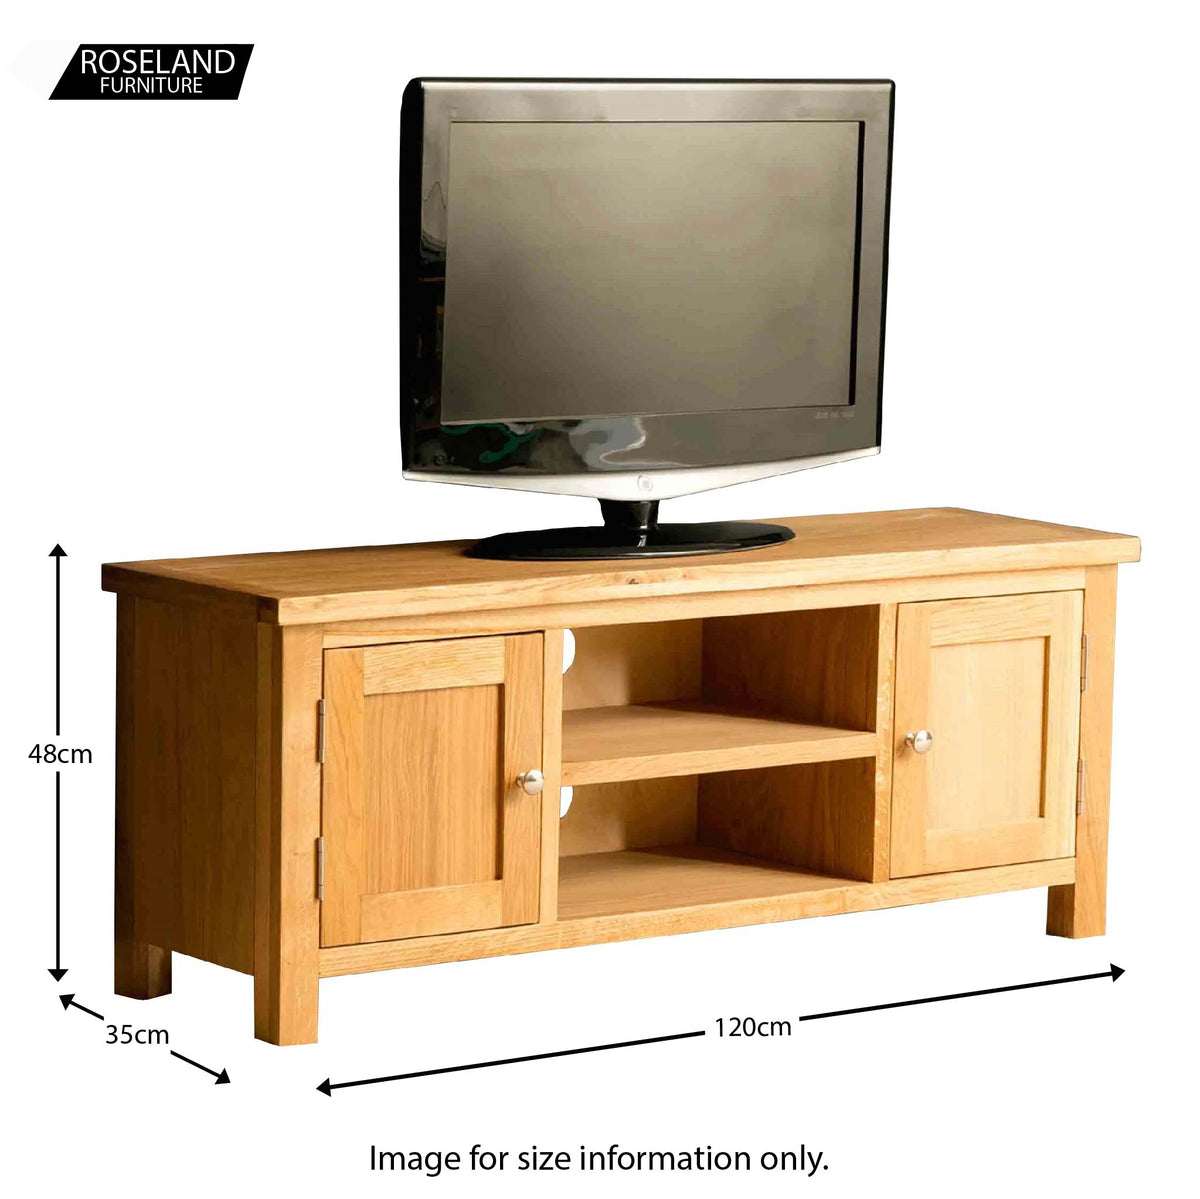 The London Oak 120cm TV Stand - size guide